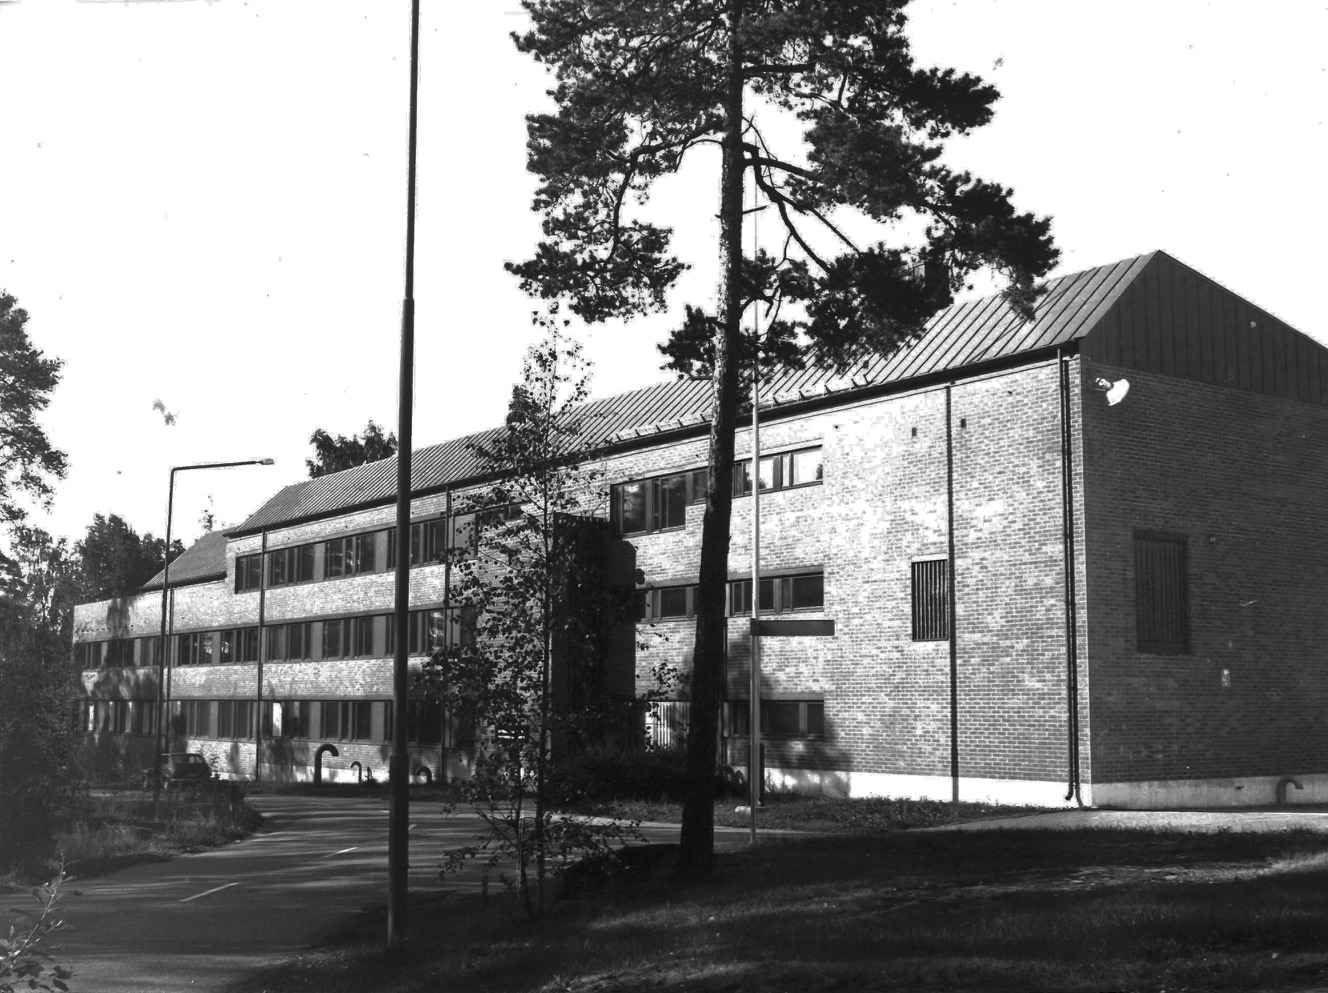 Lauttia's current project is a Thermal Laboratory, designed by Alvar Aalto, in Otaniemi, Espoo.Picture from 1960's.